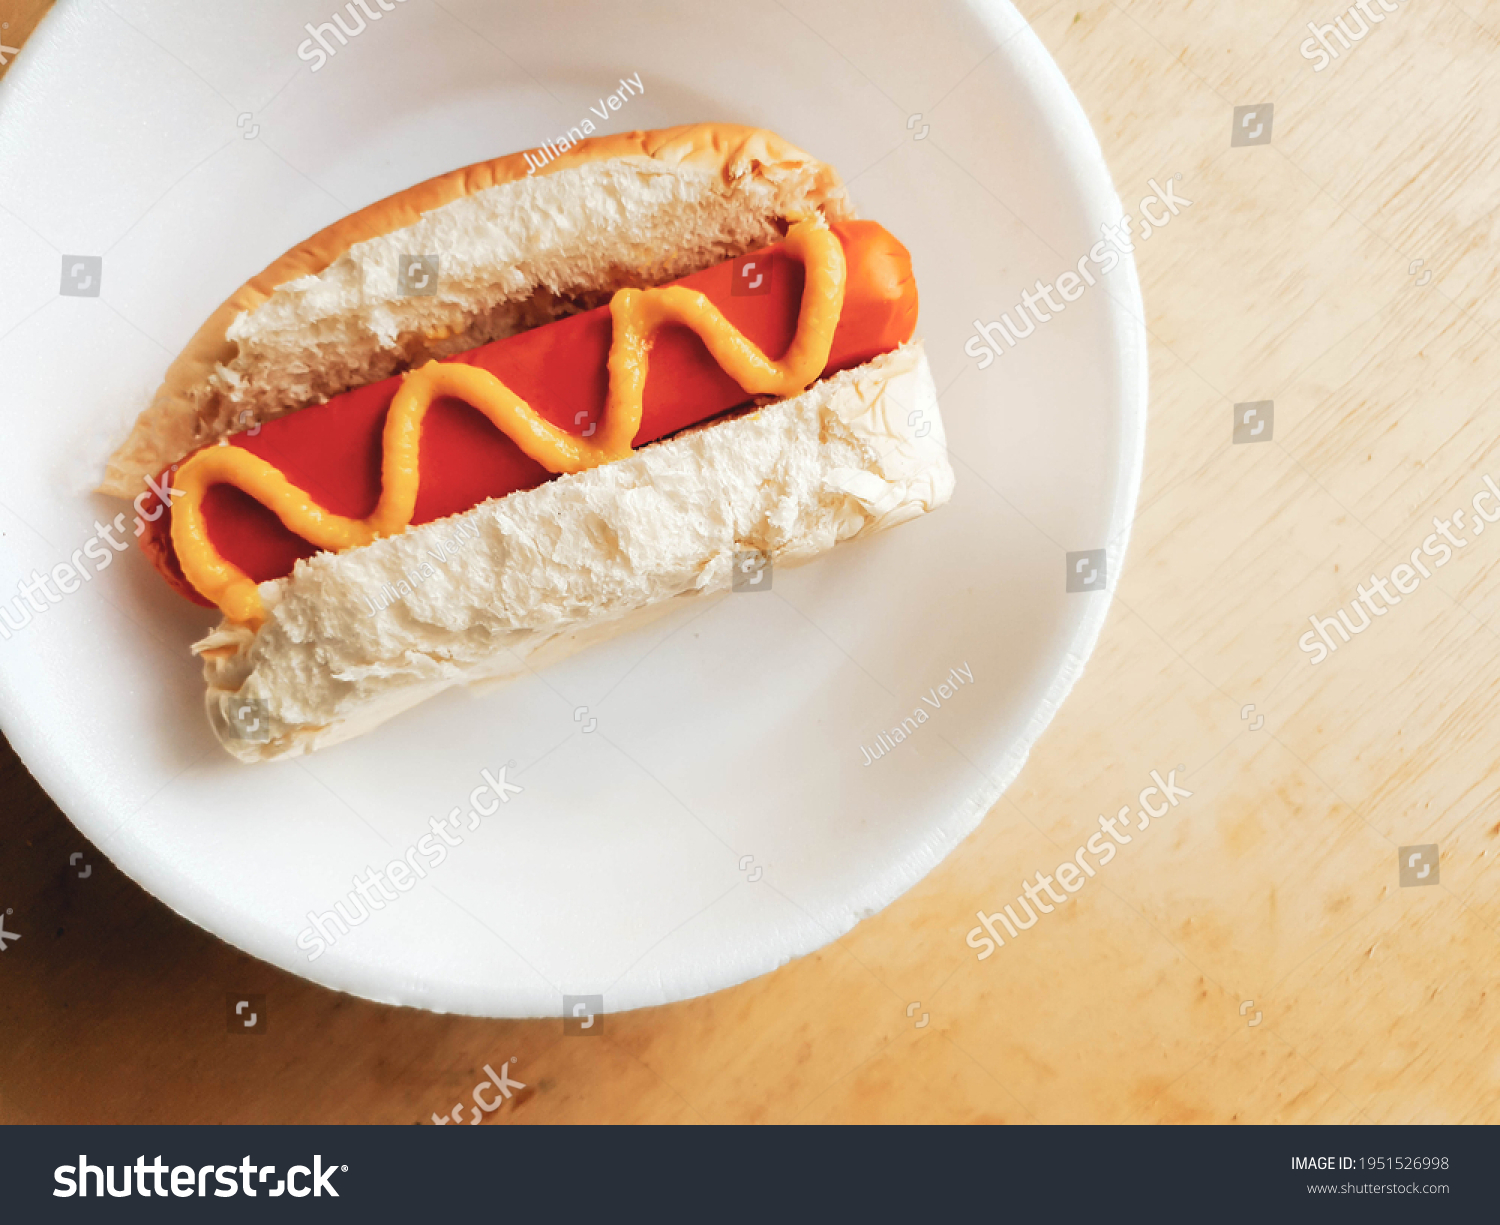 stock-photo-hot-dog-with-mustard-in-styr